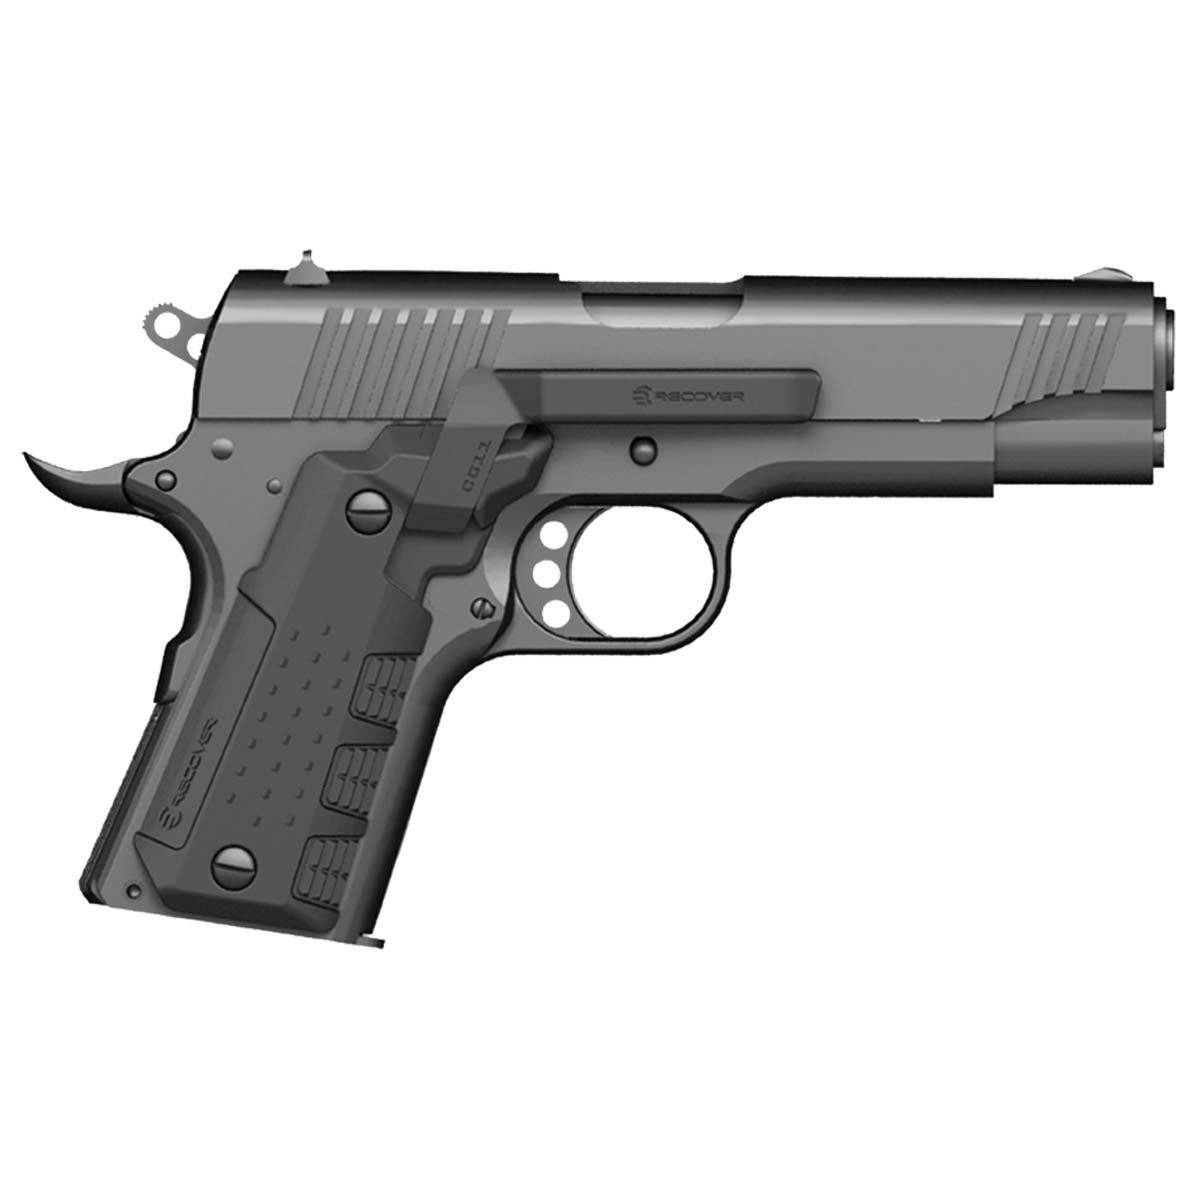 Recover-Tactical-Officer-Compact-1911-Clip-Grip-System